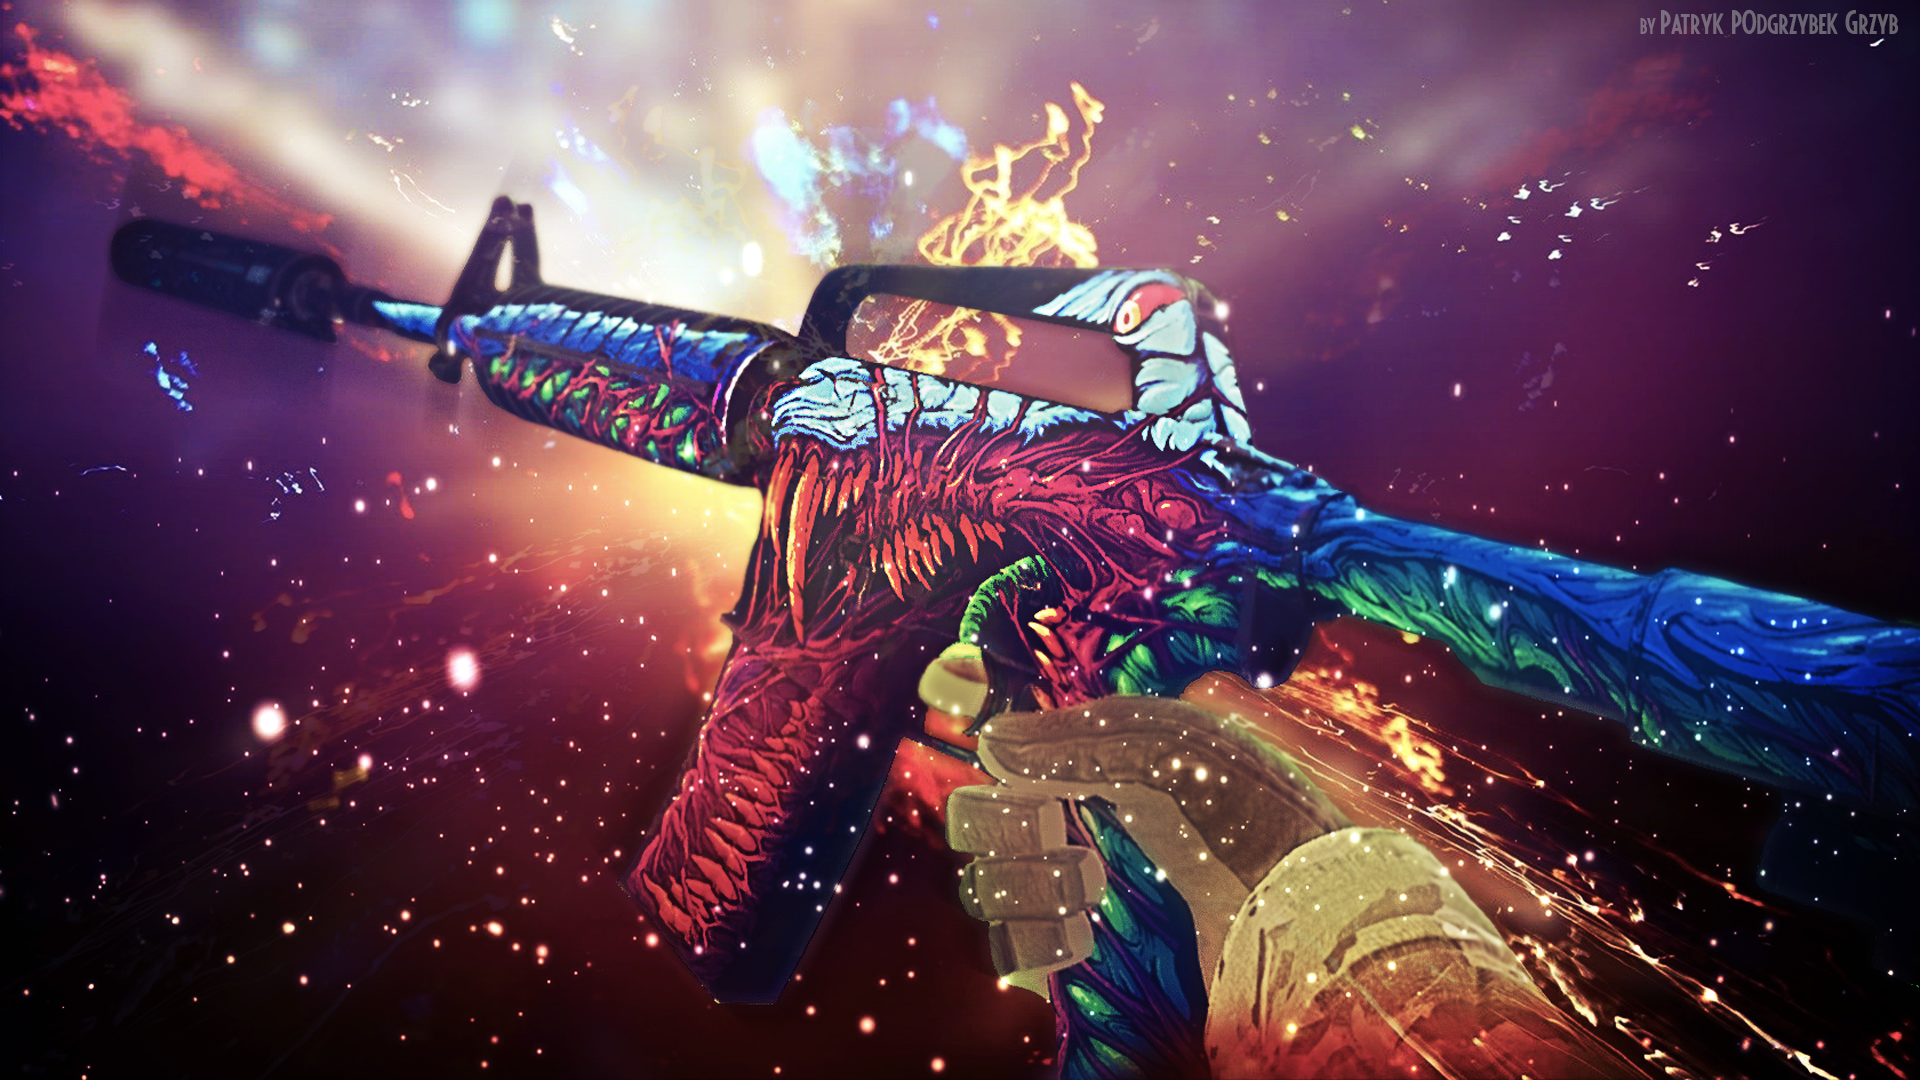 Csgo Hyper Beast Wallpaper Wallpapersafari